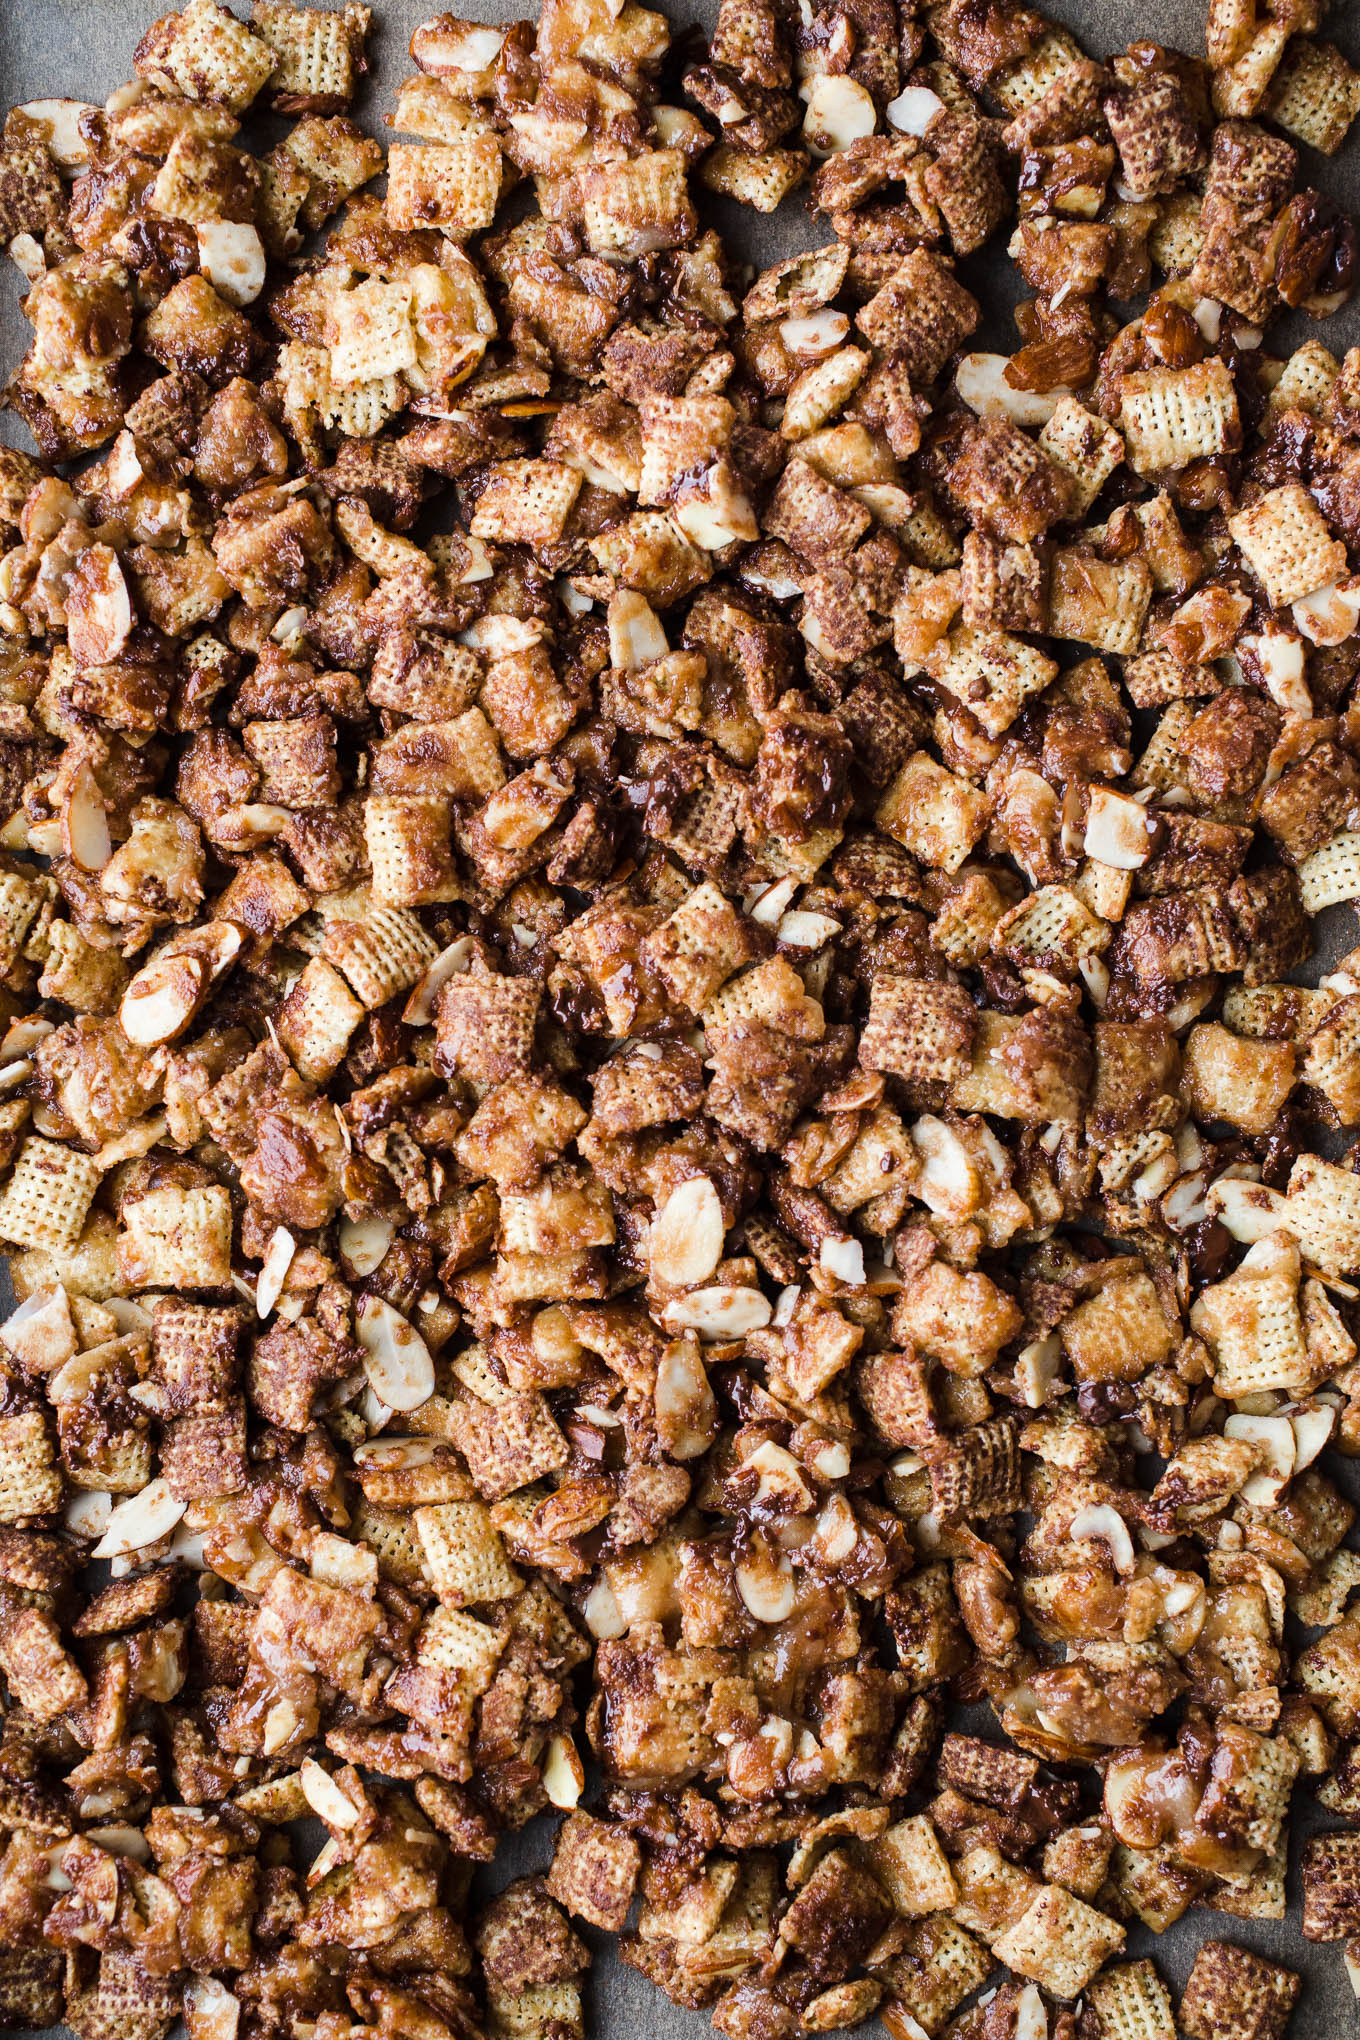 Coconut Chocolate Chex Mix is an easy dairy-free sweet chex mix made with coconut butter and maple syrup. A healthier gluten-free and vegan chex mix recipe!